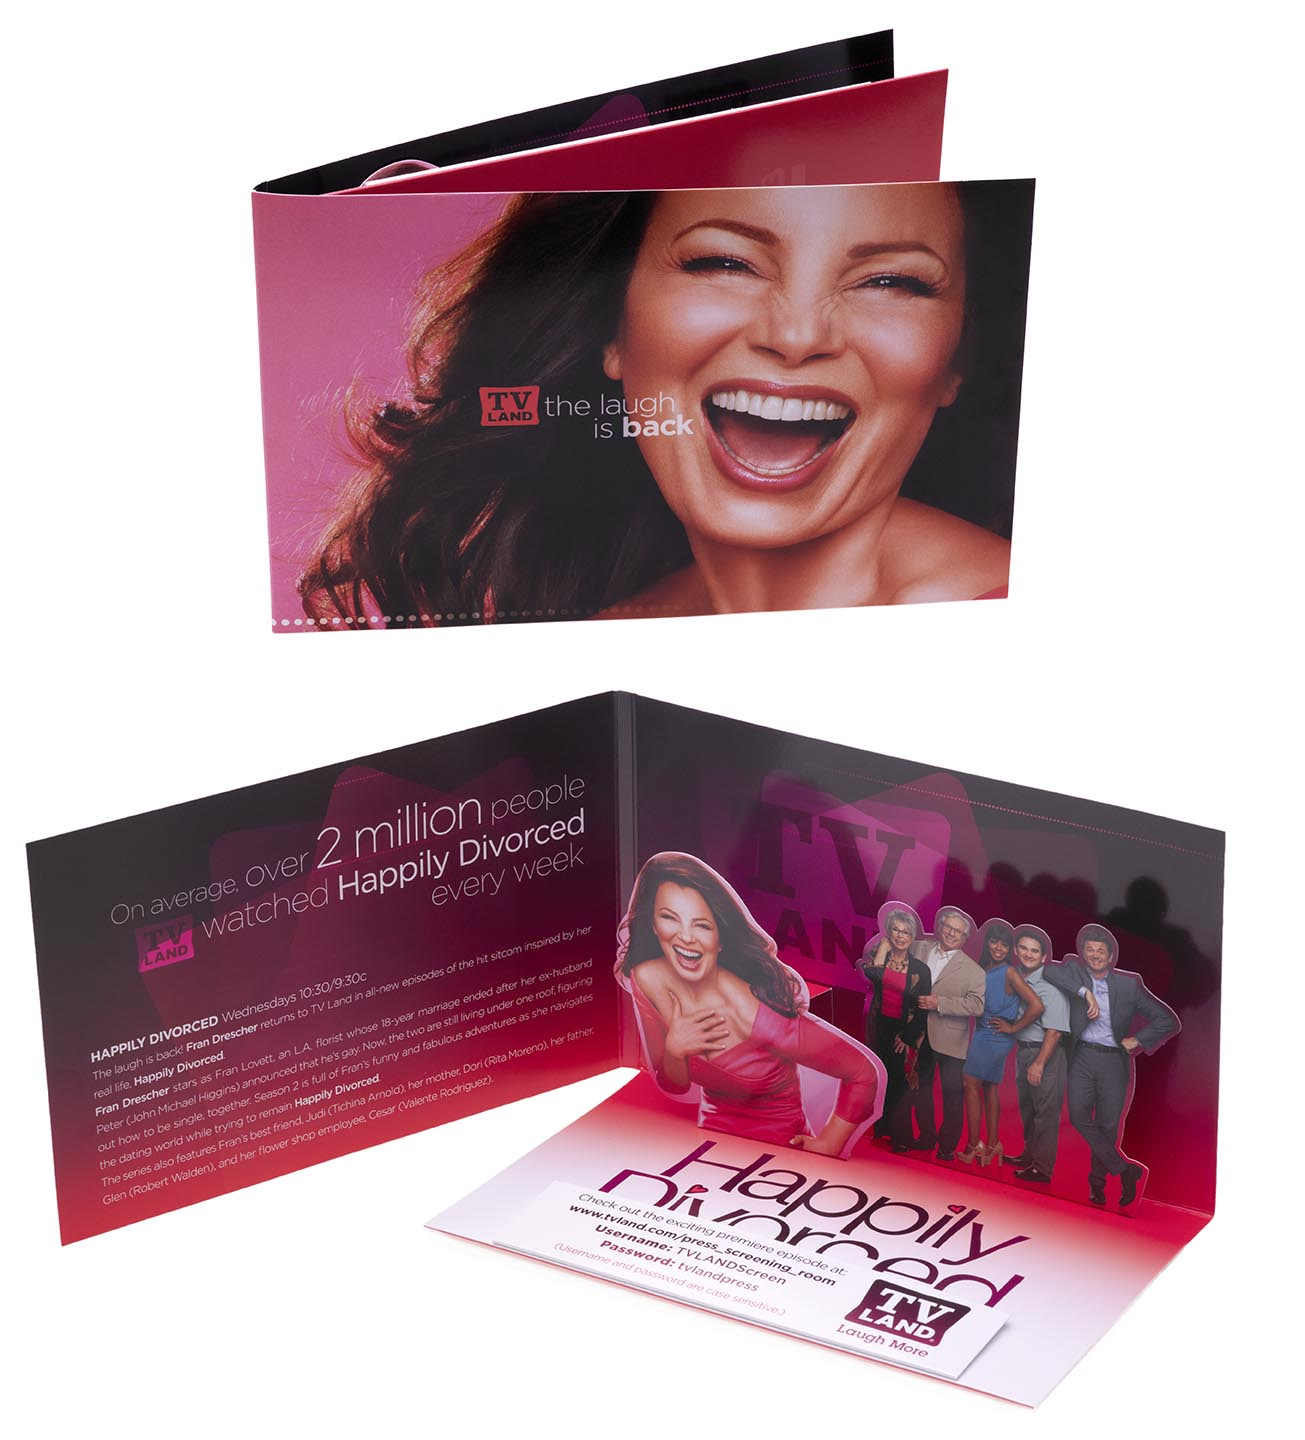 Happily Divorced press kit